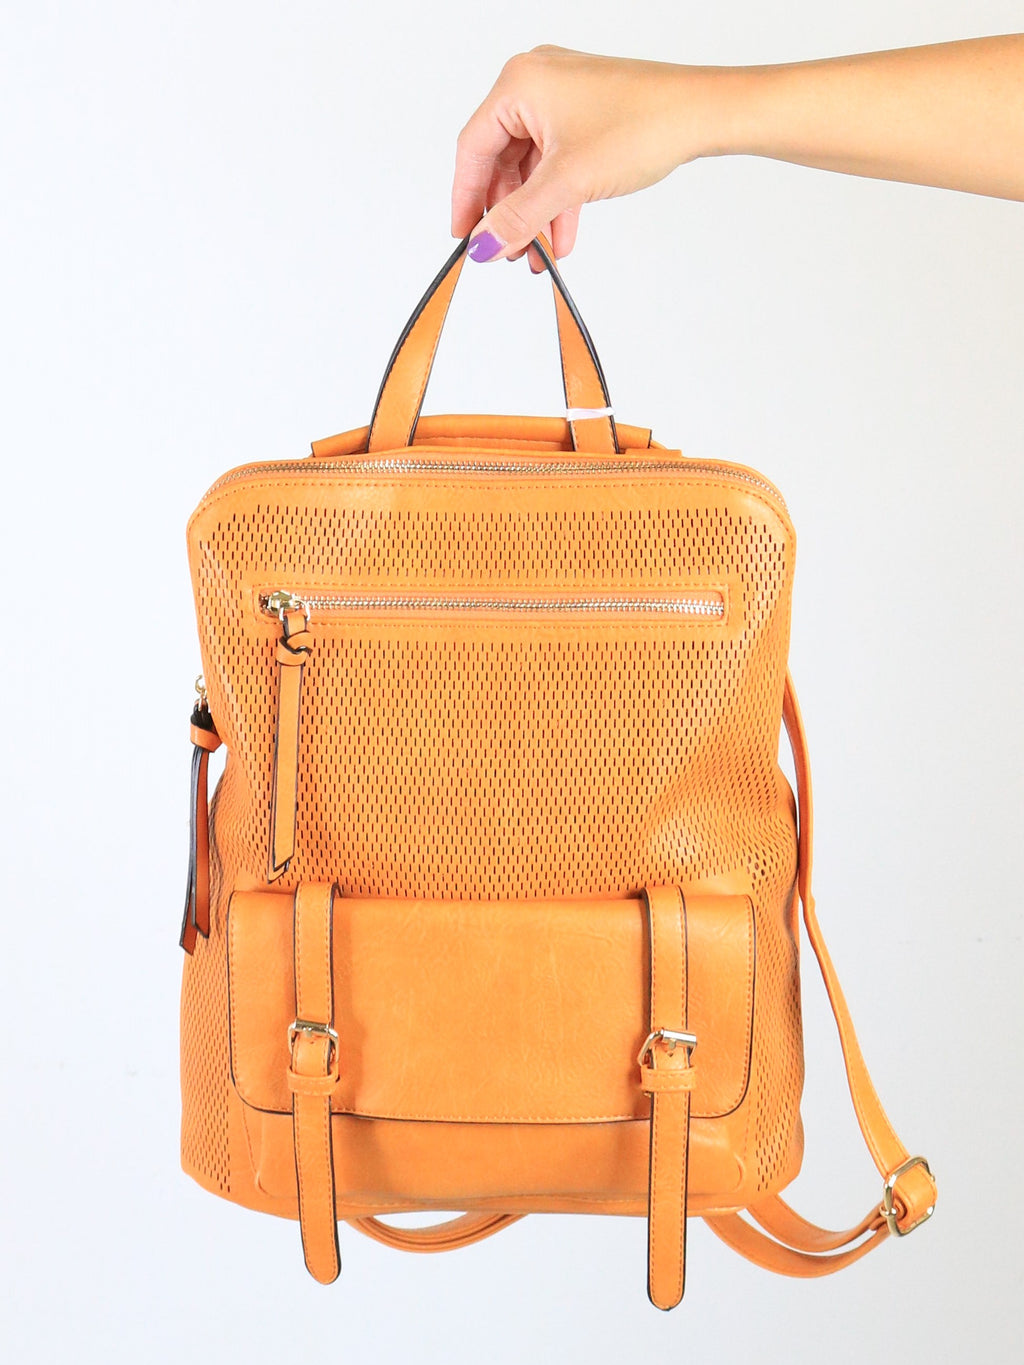 The Becky Backpack Purse